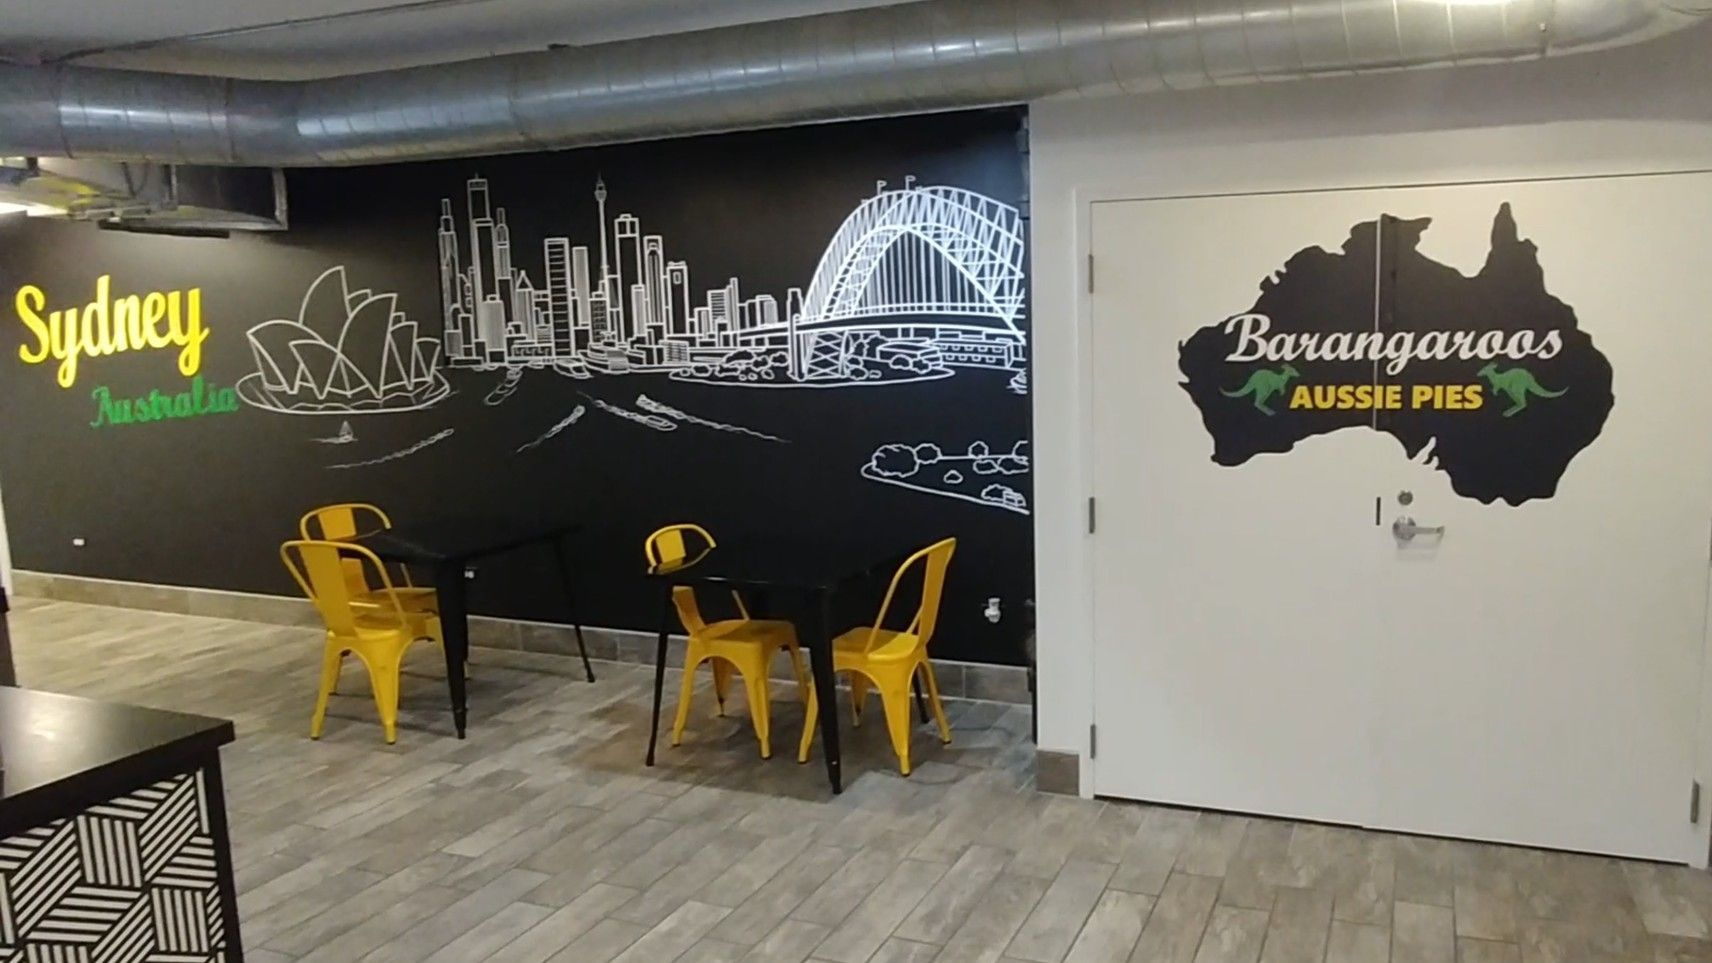 Barangaroos Aussie Pies comes to Lakeview from Down Under, plus other restaurant news